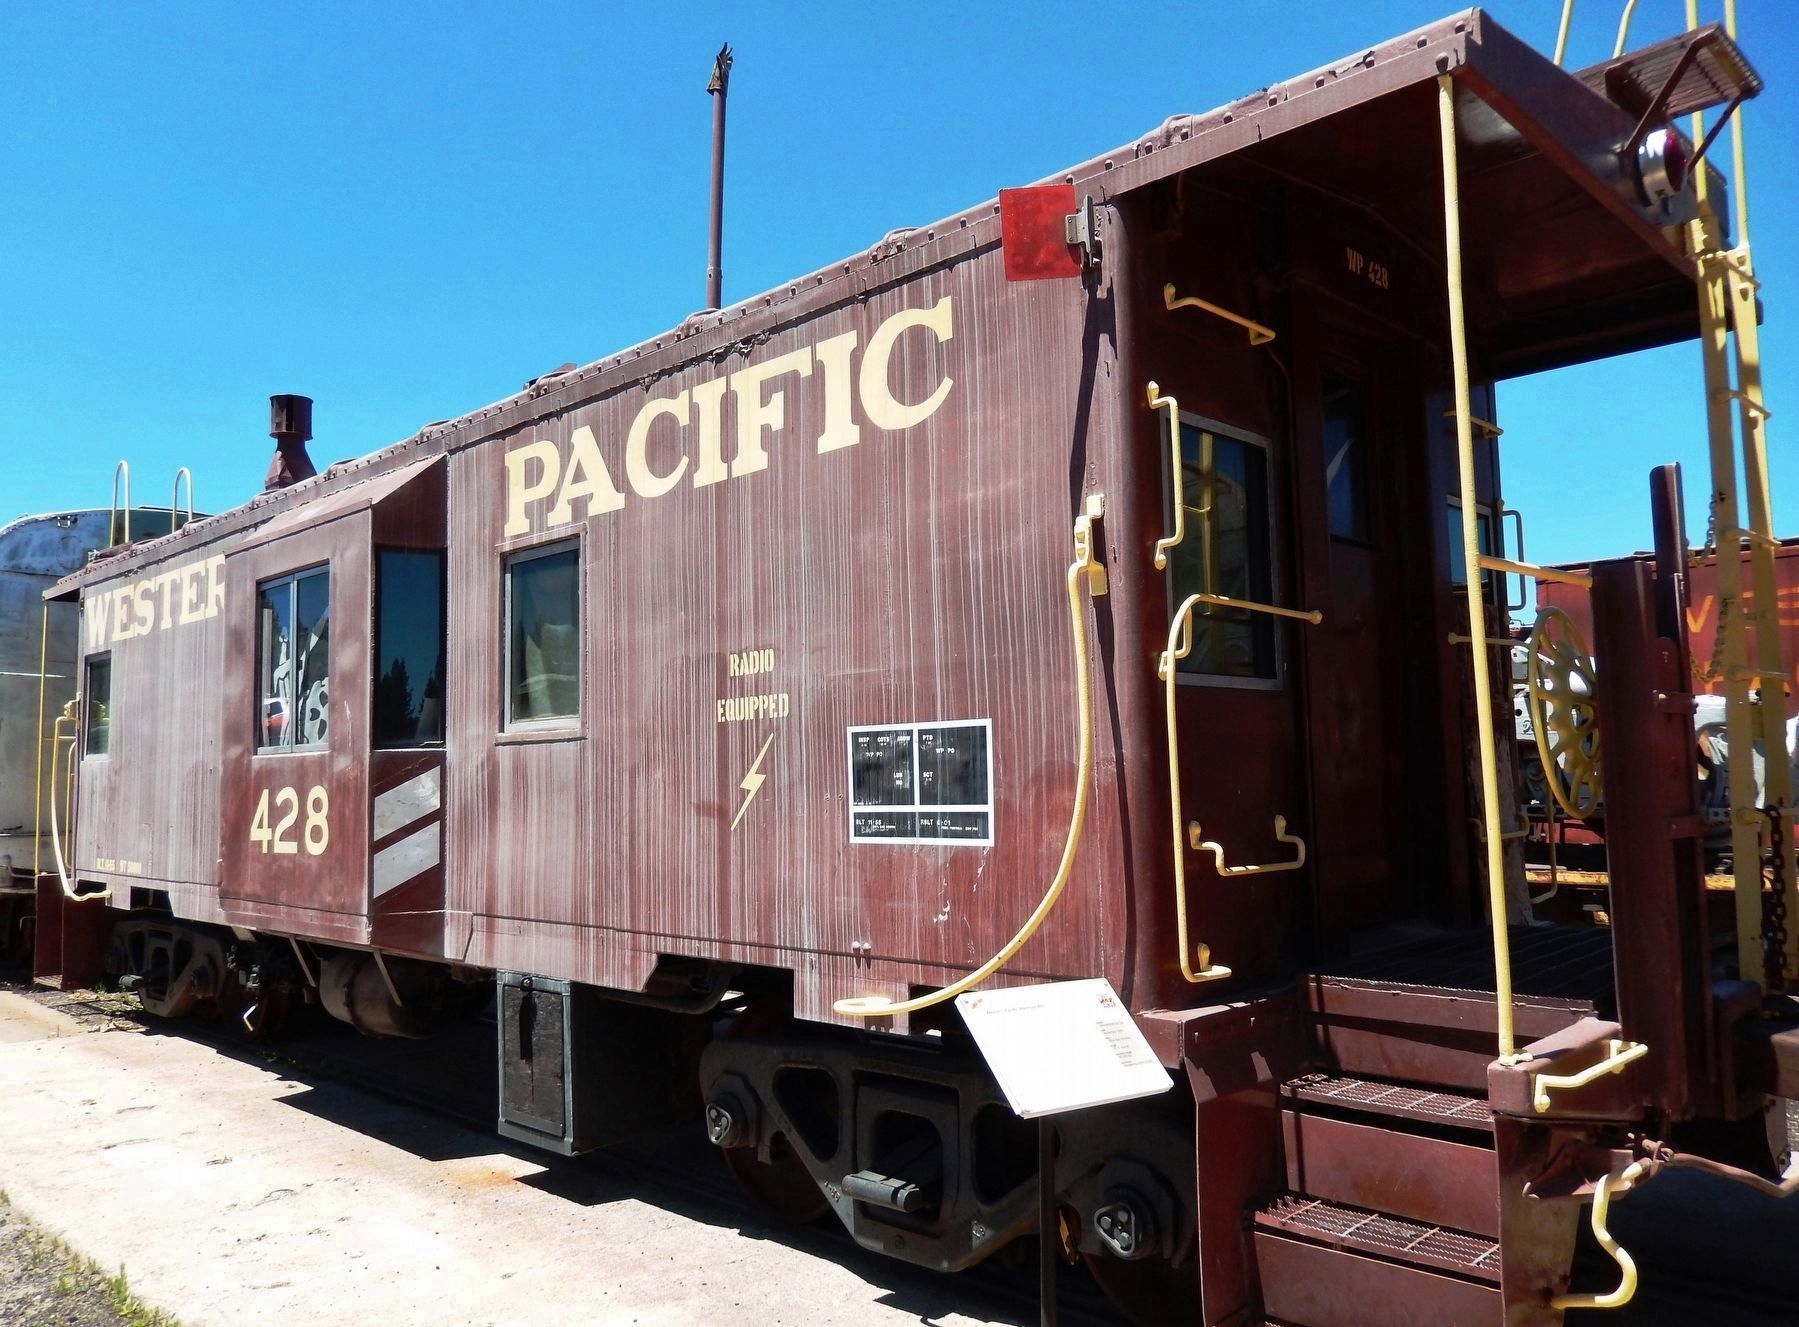 Western Pacific Caboose #428 & Marker image. Click for full size.